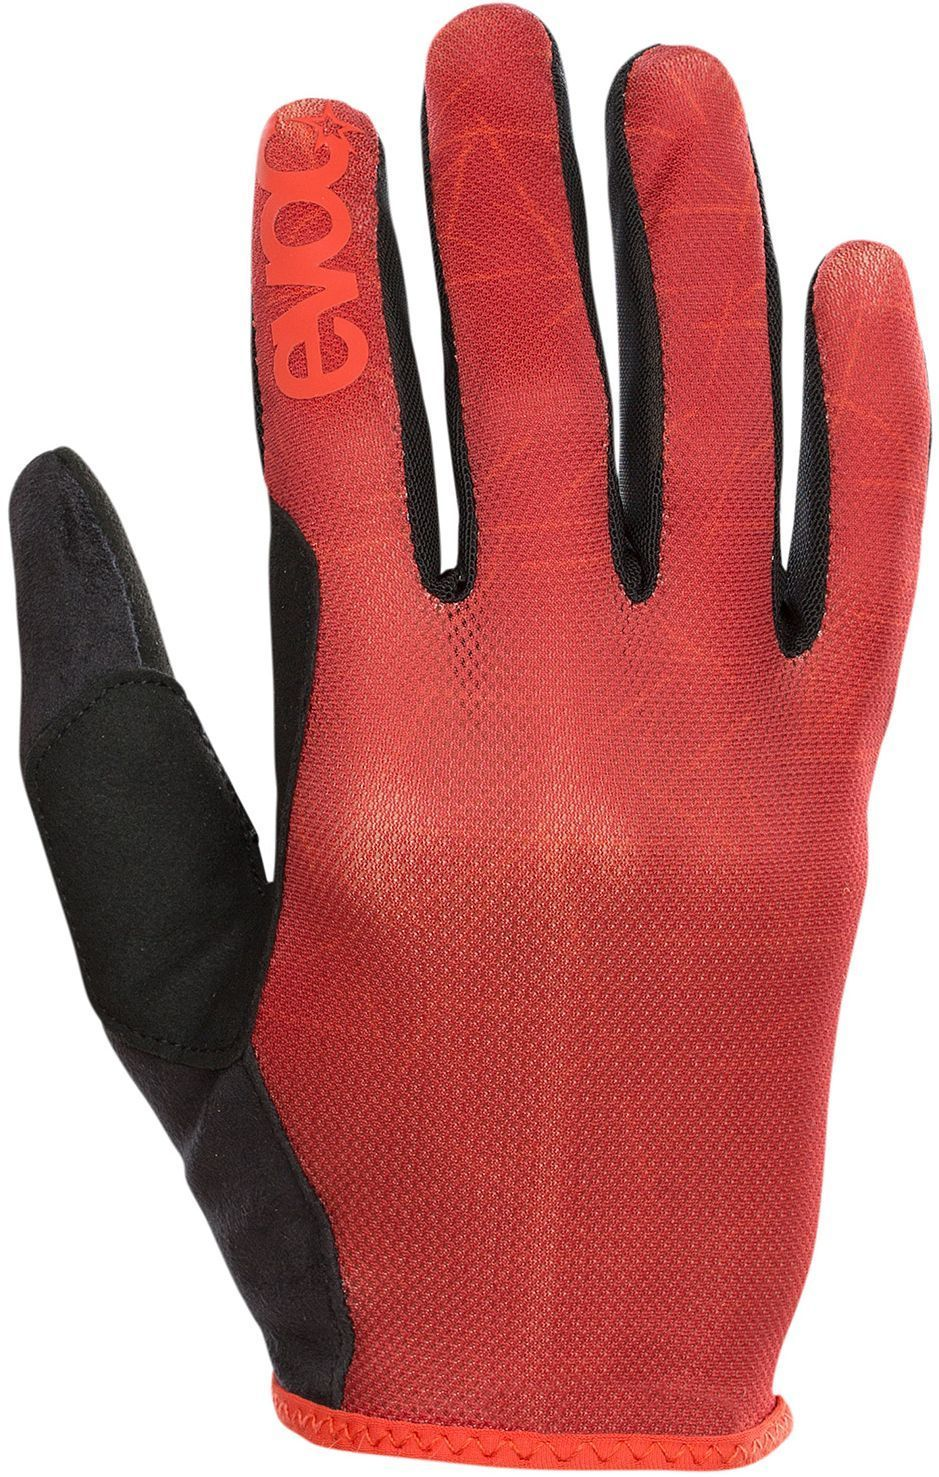 Evoc Lite Touch Glove - chili red XL